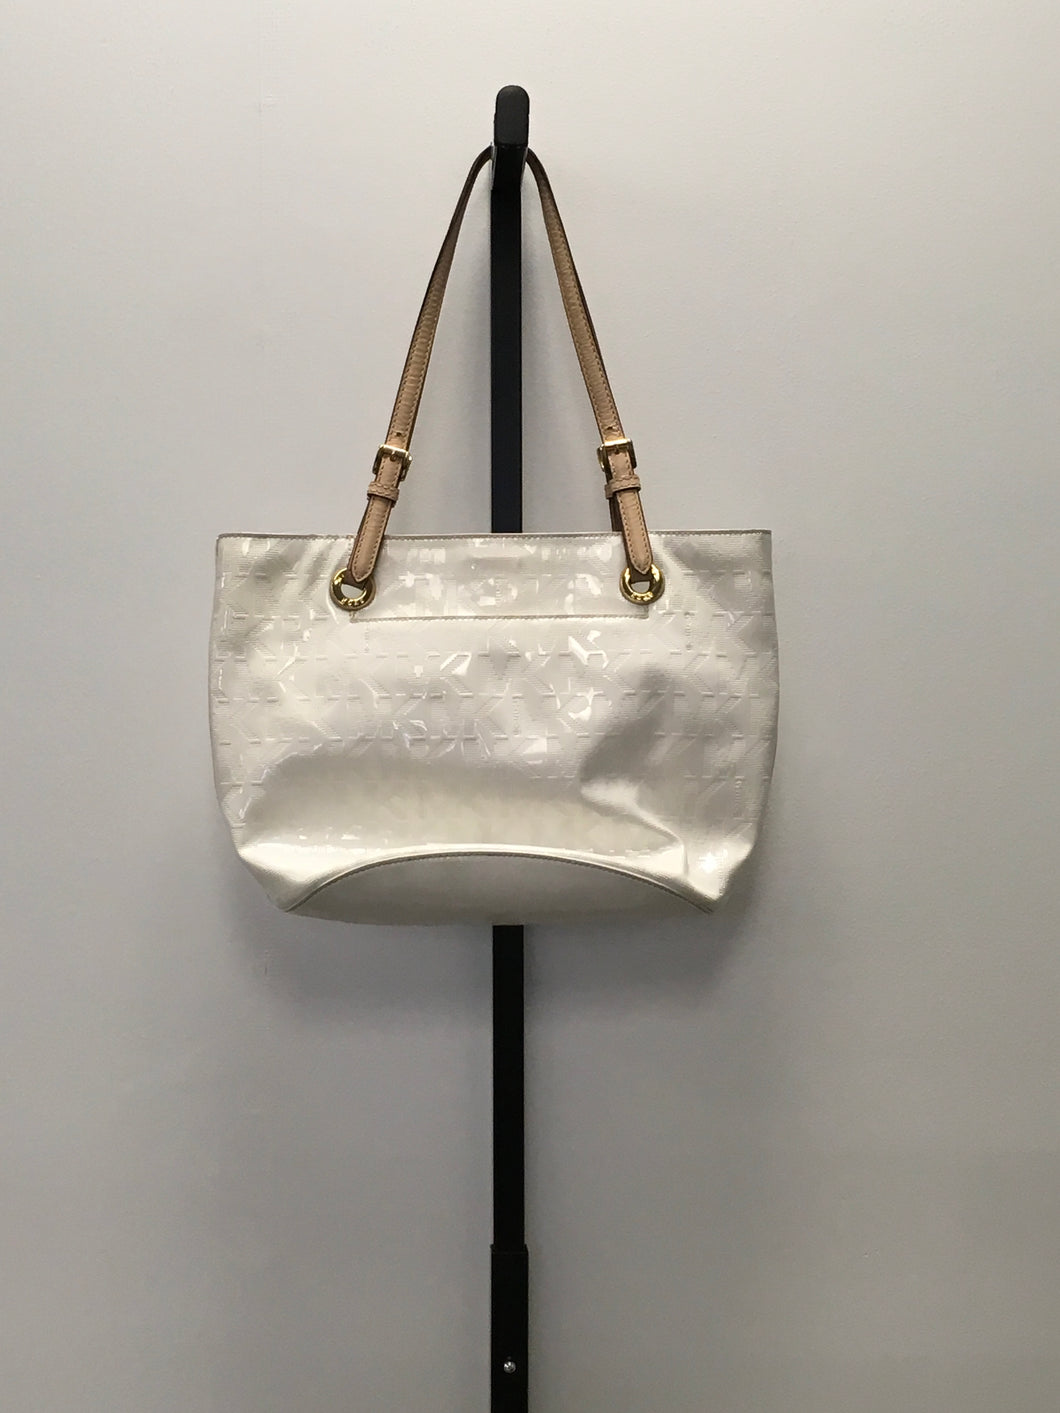 C37-2 Michael Kors White Vinyl Tote Bag